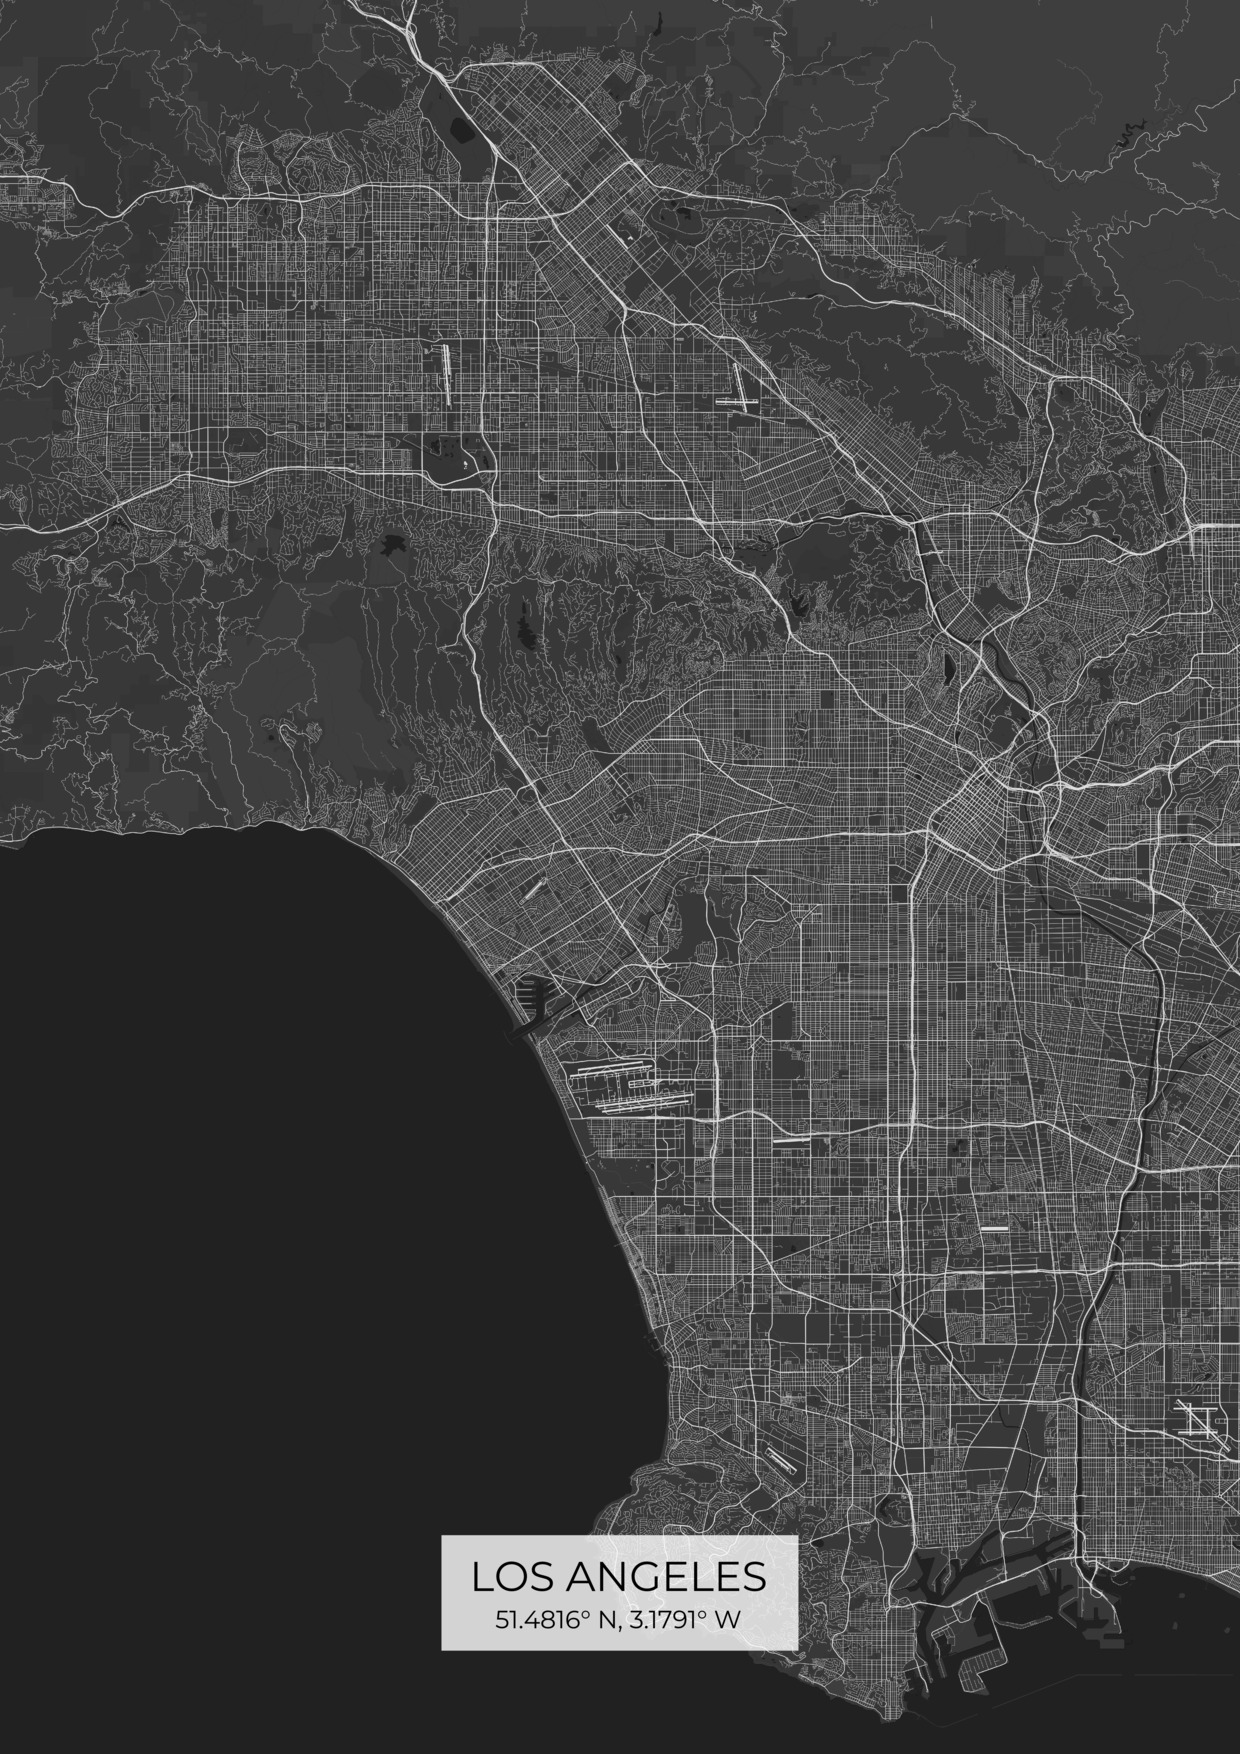 Custom Los Angeles City Map Posters